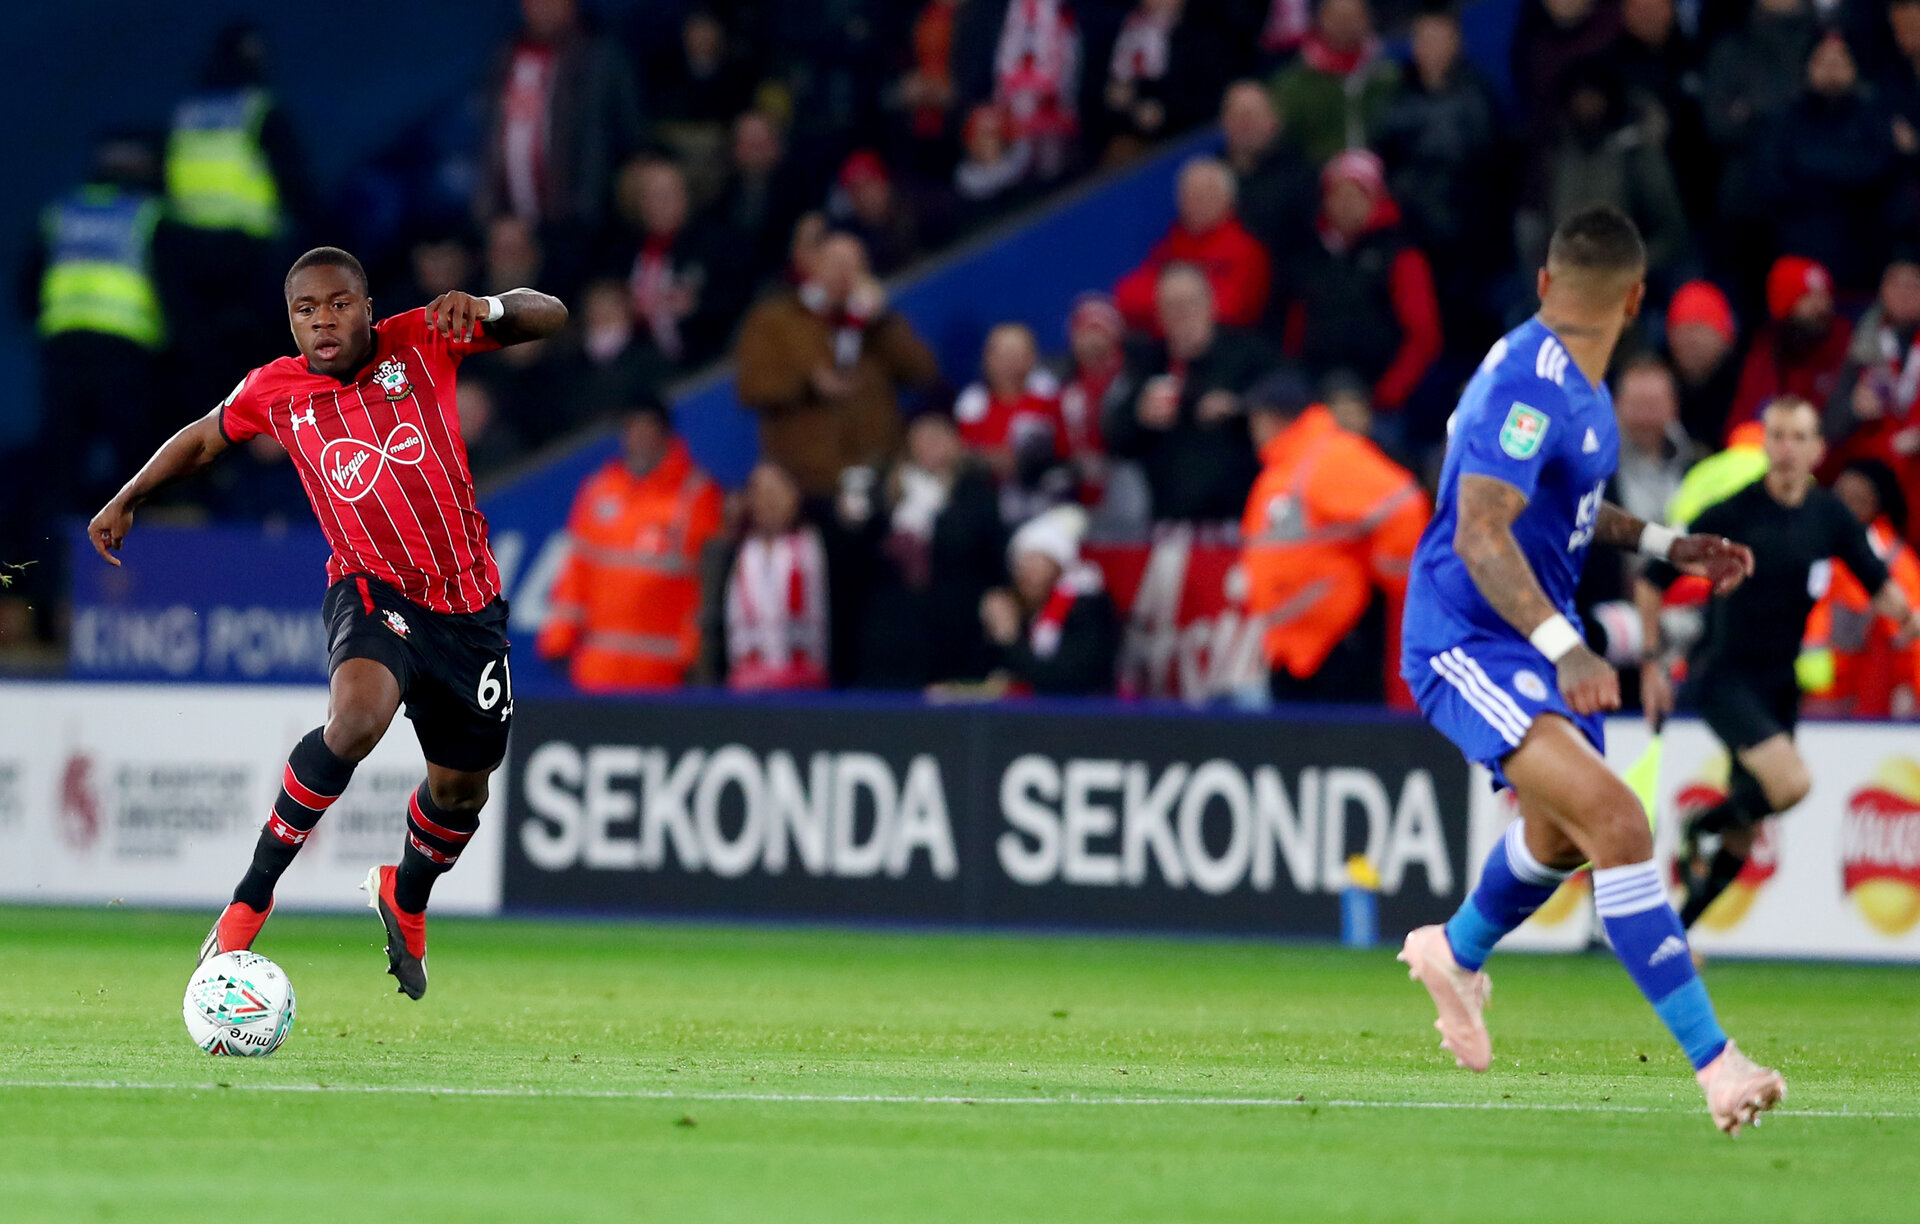 LEICESTER, ENGLAND - NOVEMBER 27: Michael Obafemi of Southampton during the Carabao Cup Fourth Round match between Leicester City and Southampton at The King Power Stadium on November 27th, 2018 in Leicester, England. (Photo by Matt Watson/Southampton FC via Getty Images)